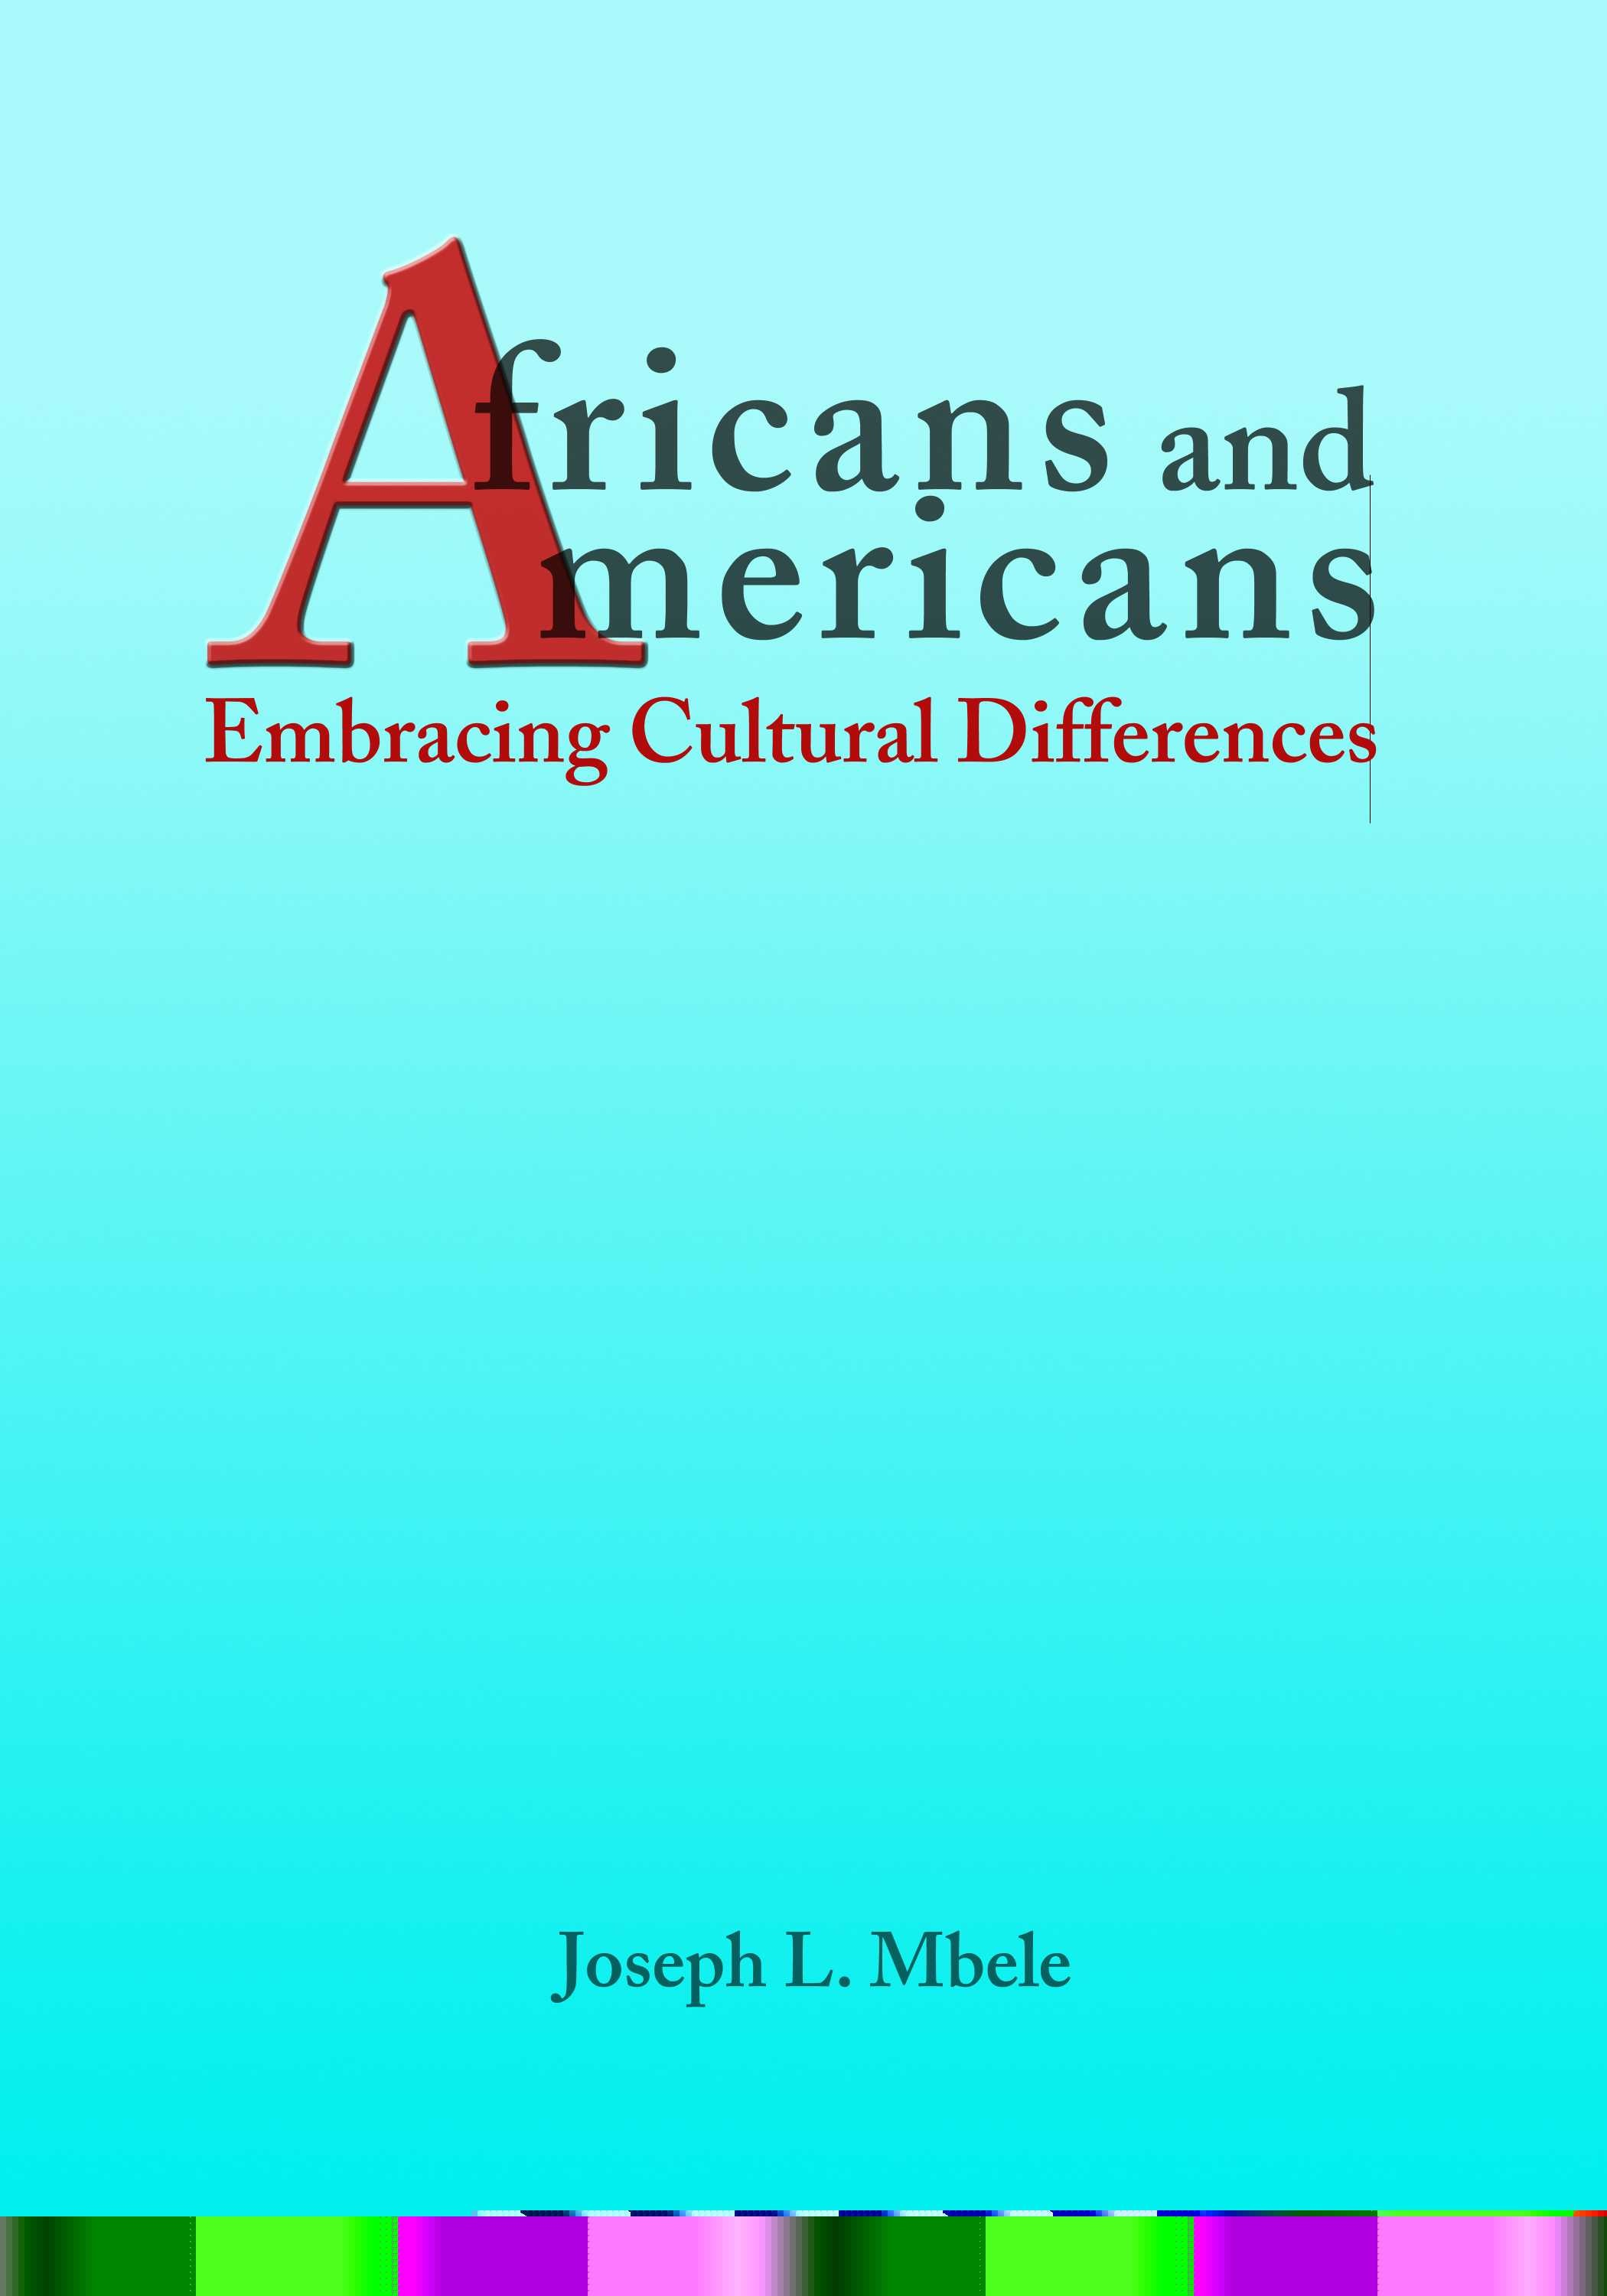 Africans and Americans: Embracing Cultural Differences